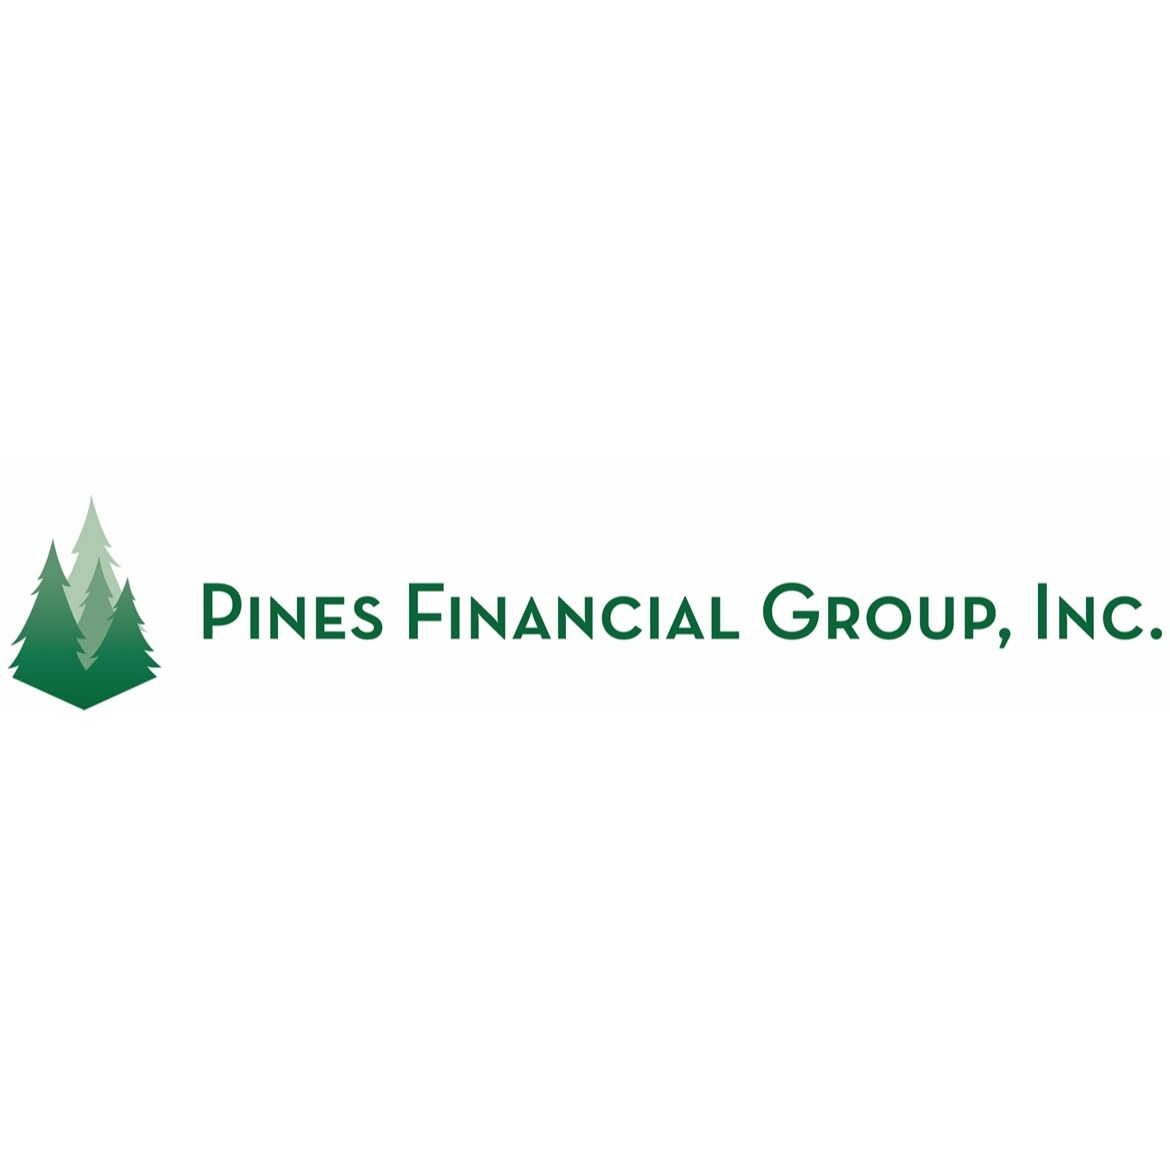 Pines Financial Group, Inc.